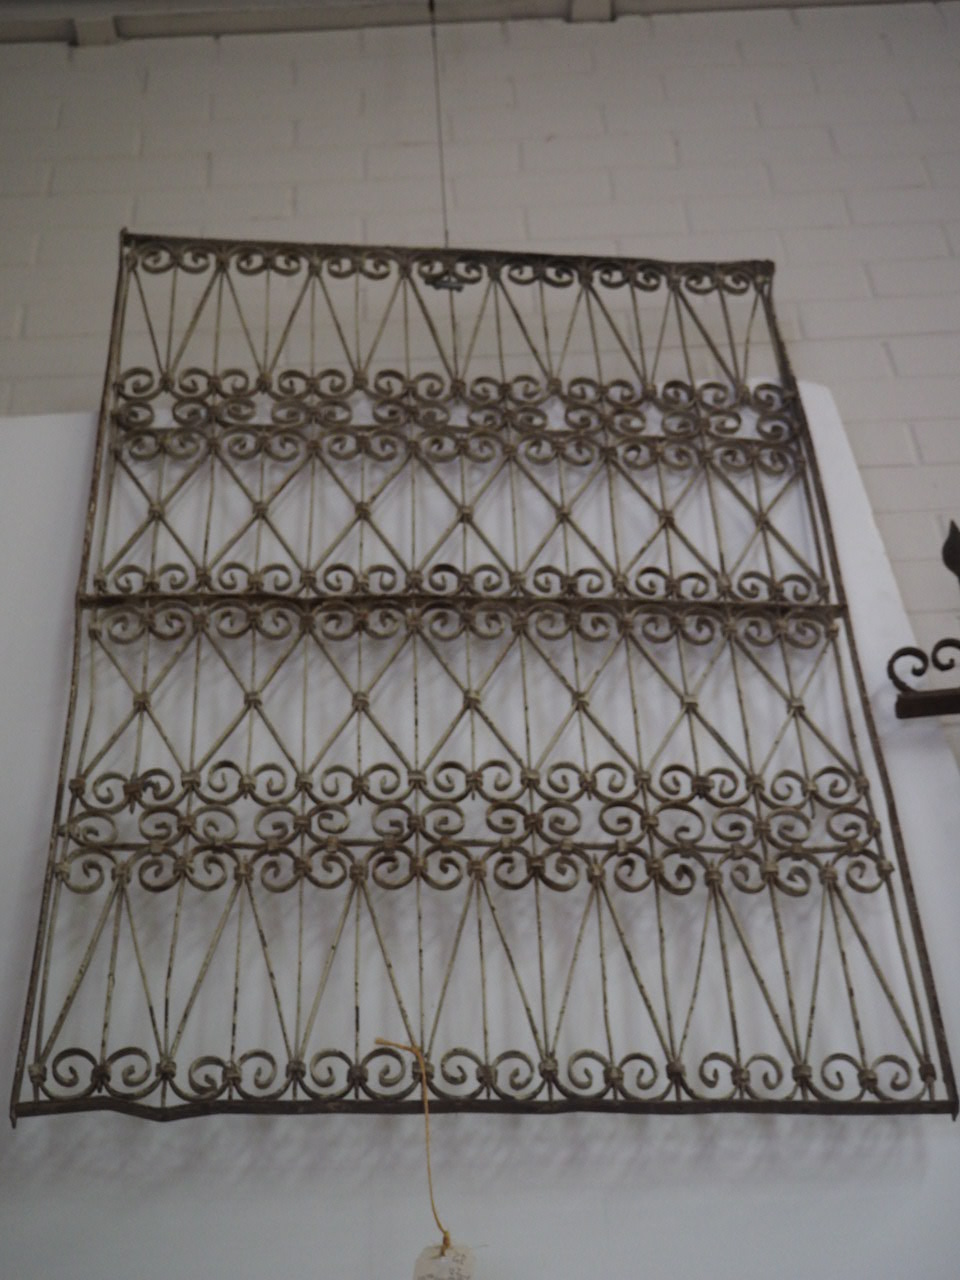 Antique 19th Century Ottoman wrought iron Grille